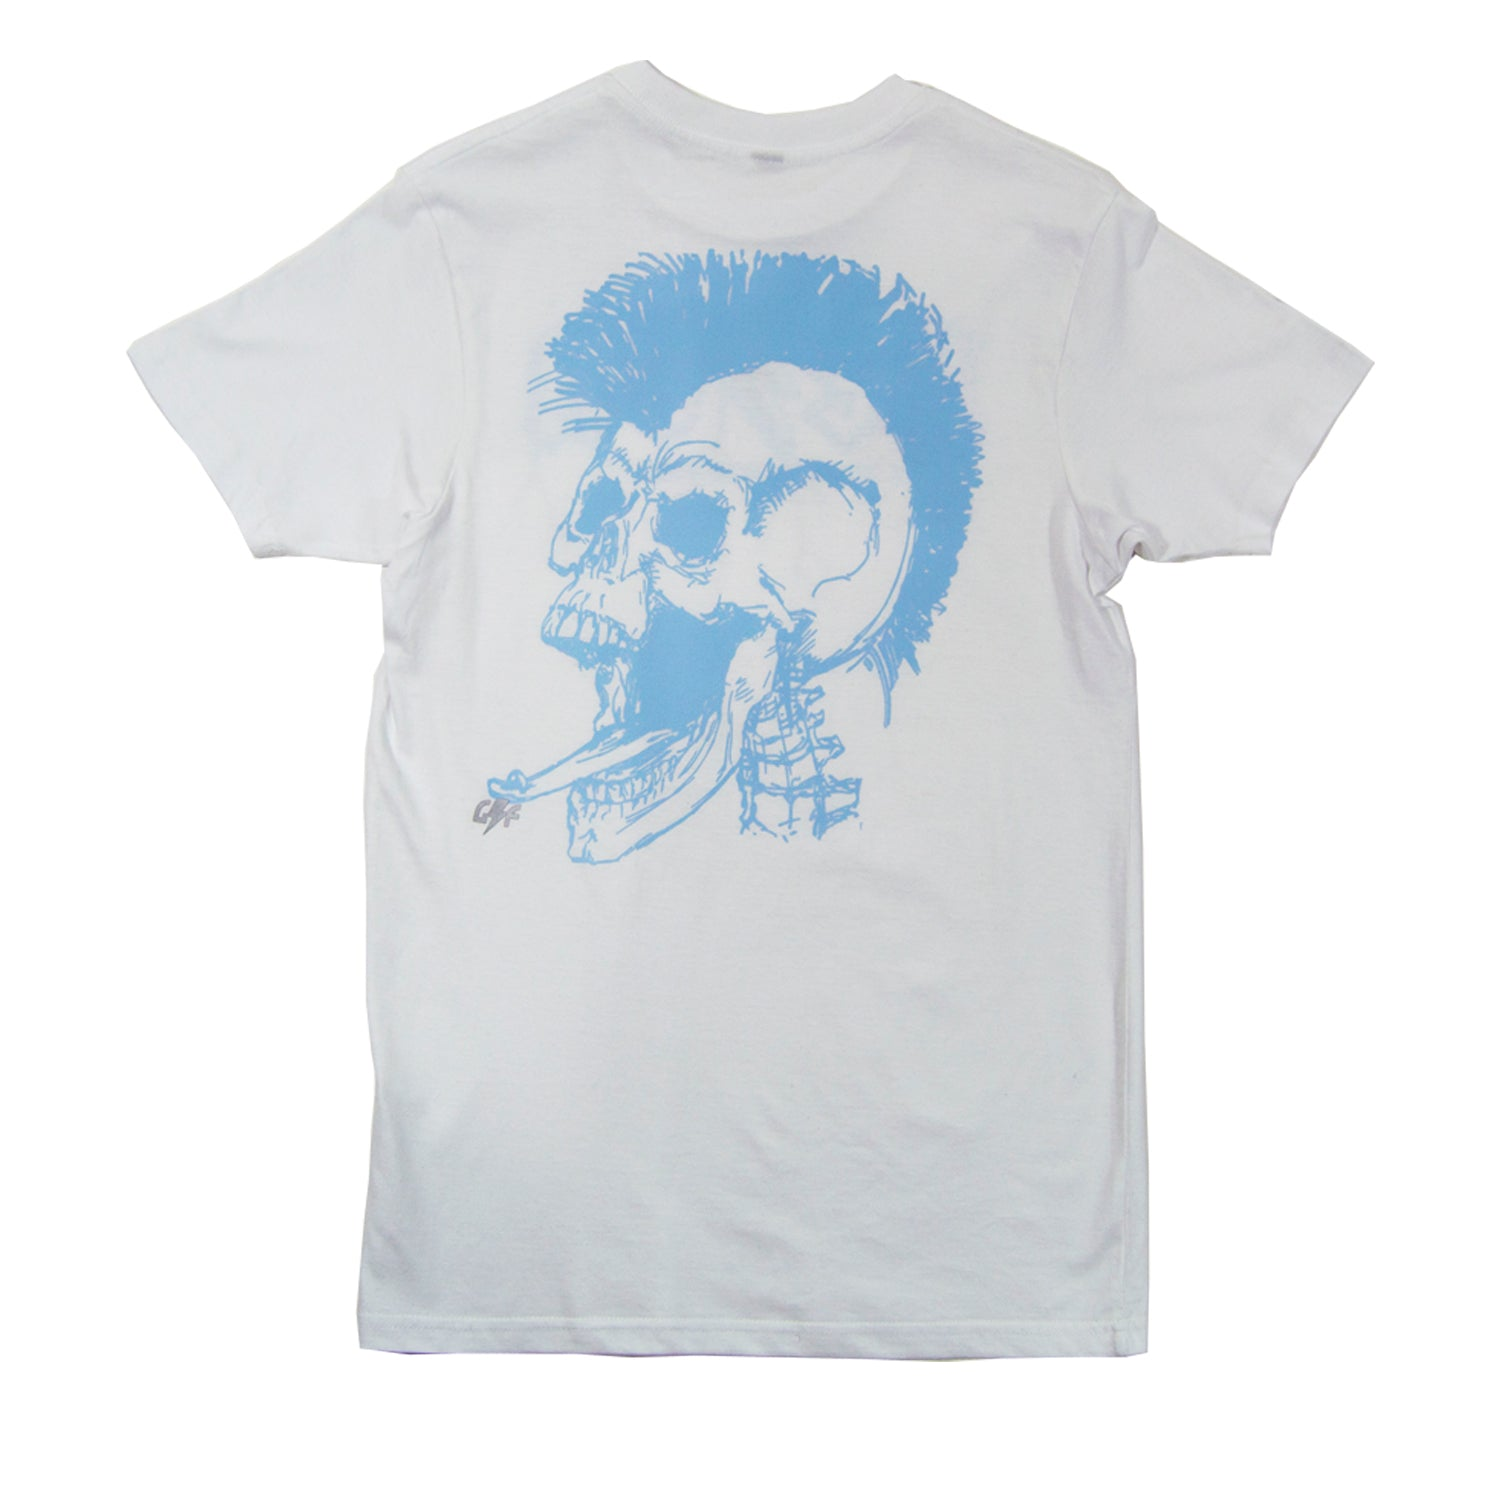 White/Blue Re⚡️gn 2 T-shirt - Gifts of Fortune